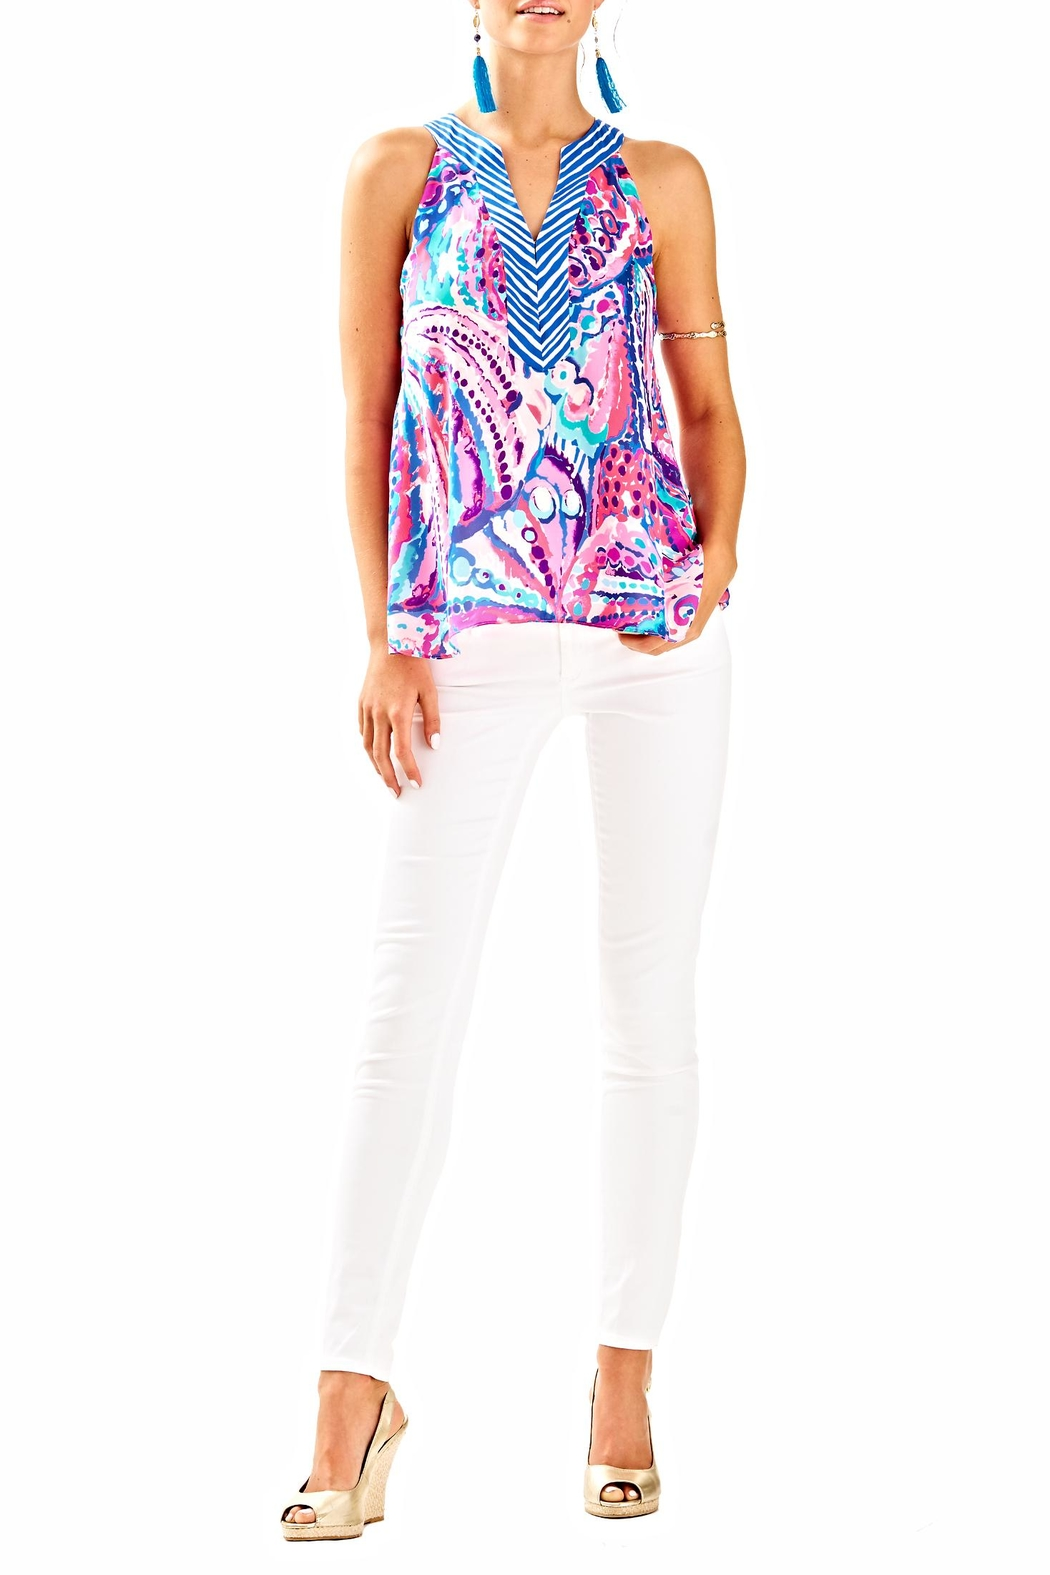 Lilly Pulitzer Achelle Top - Side Cropped Image